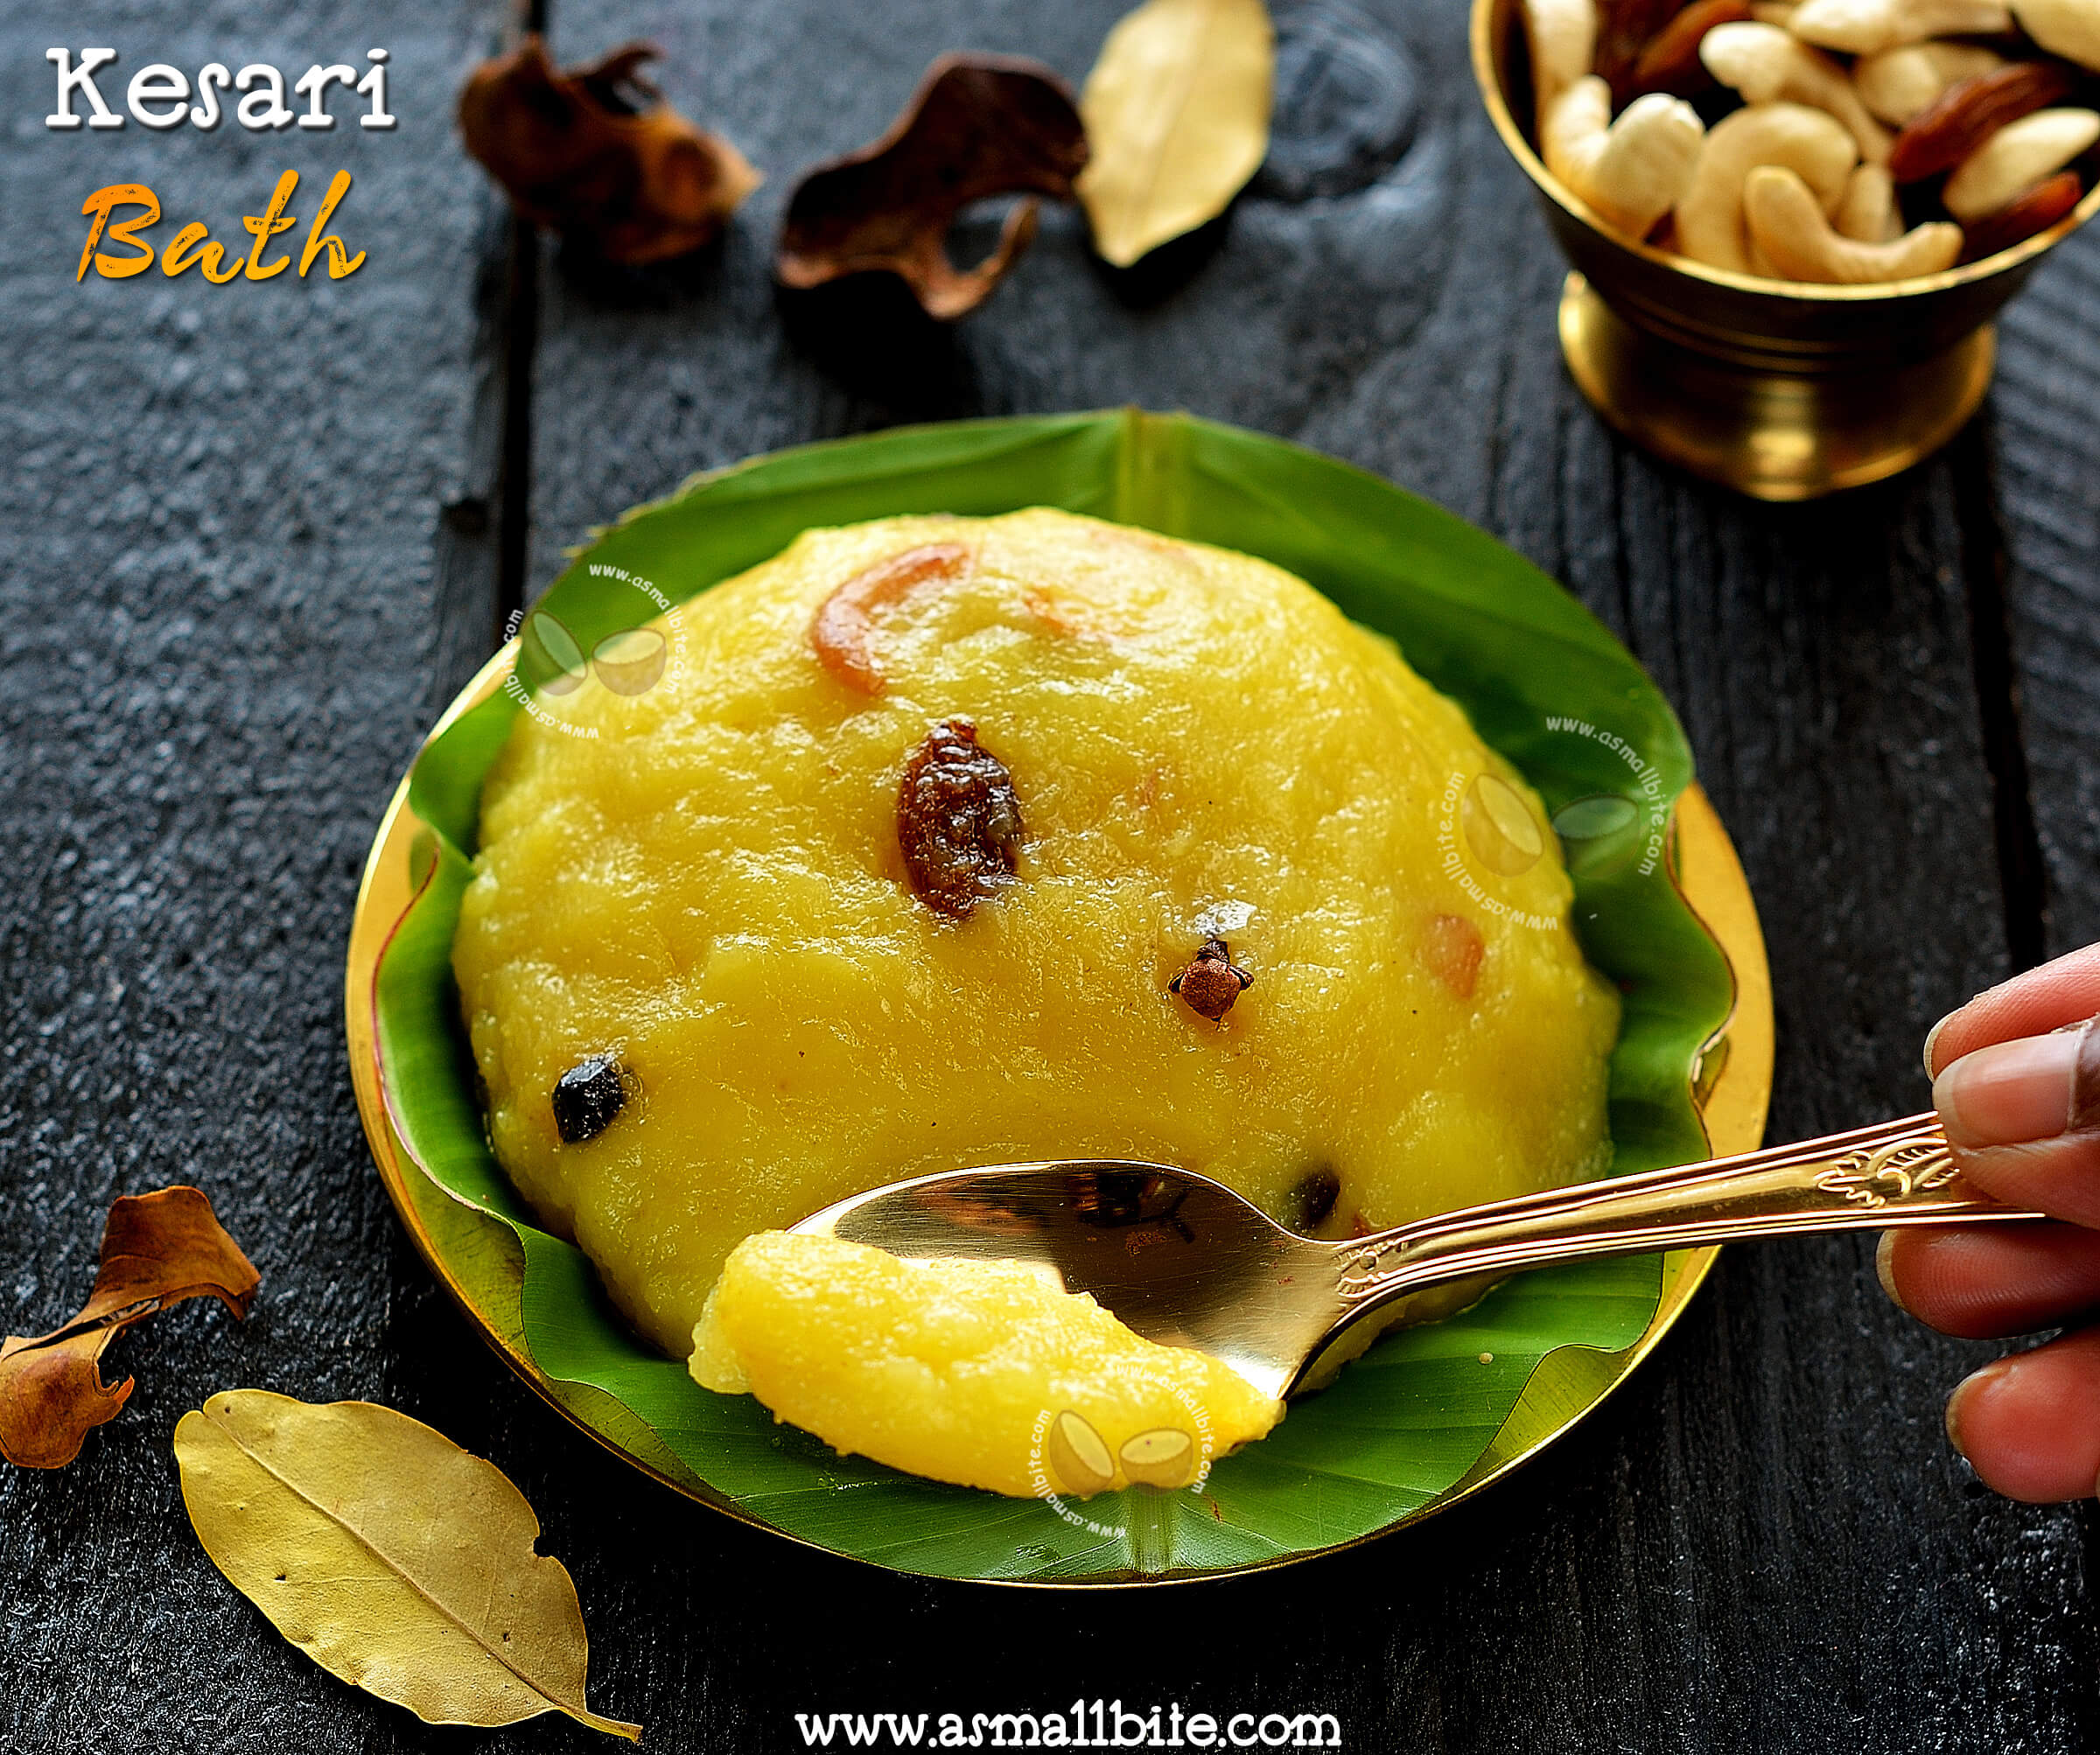 Kesari Bath Recipe